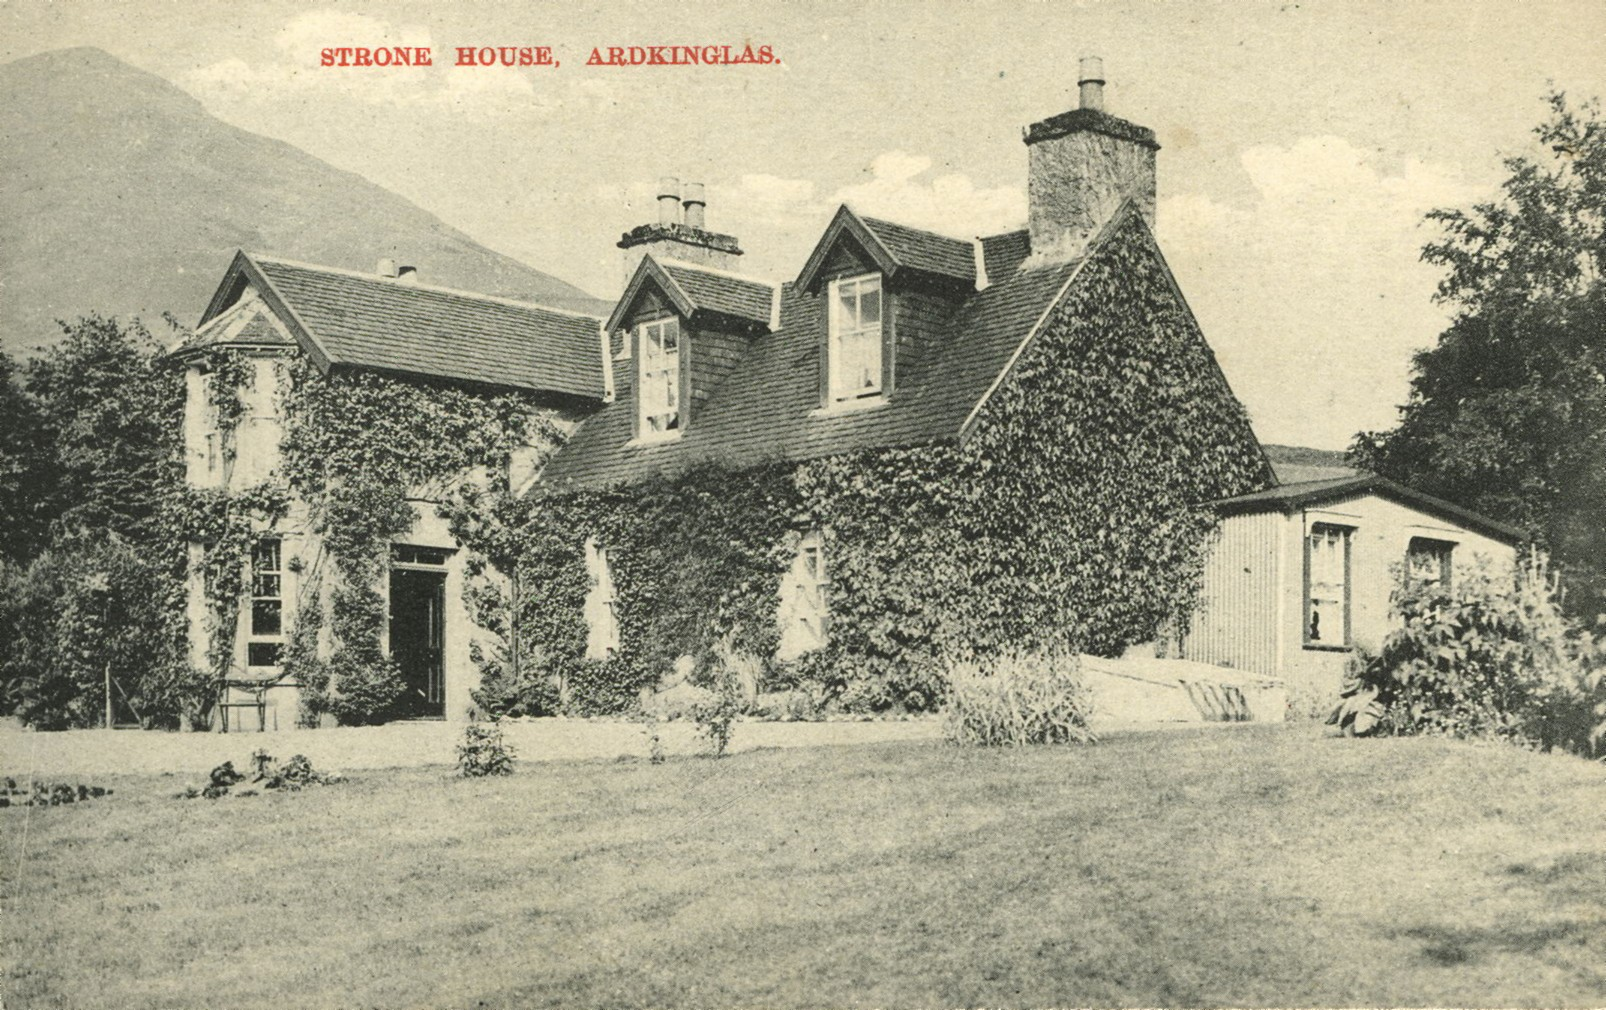 Strone House